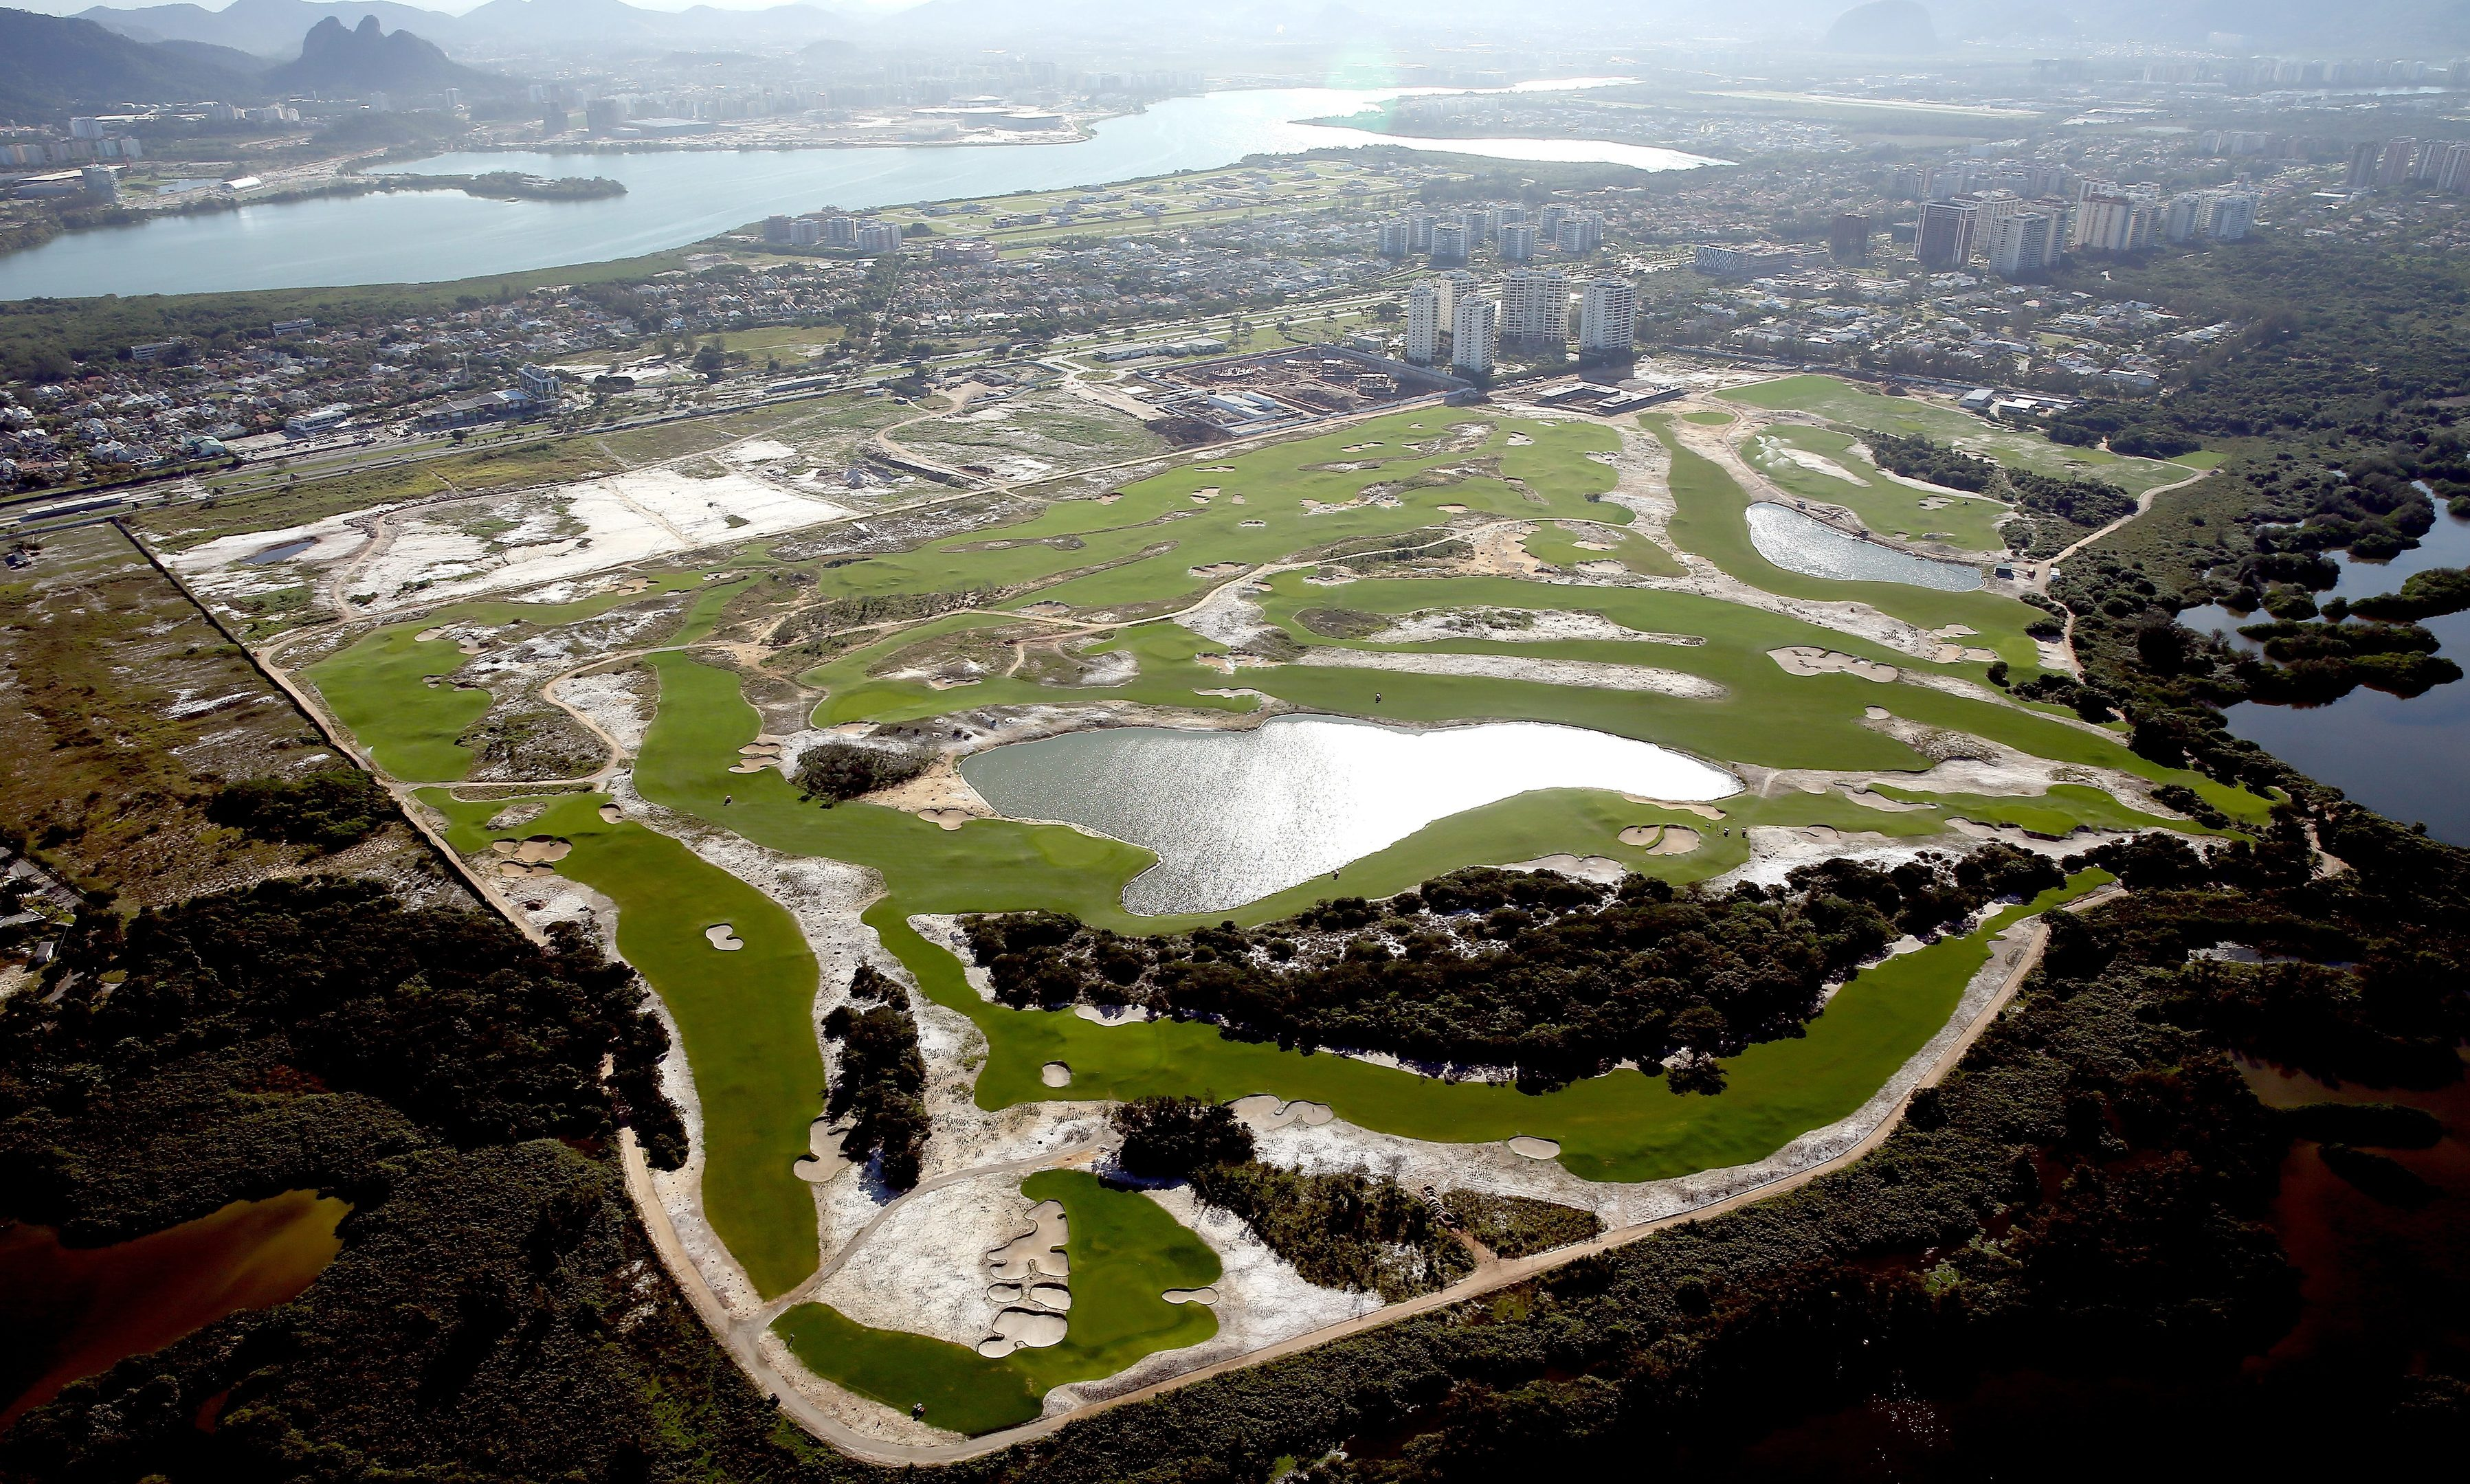 Construction of the Olympic golf course near Rio has been criticised.